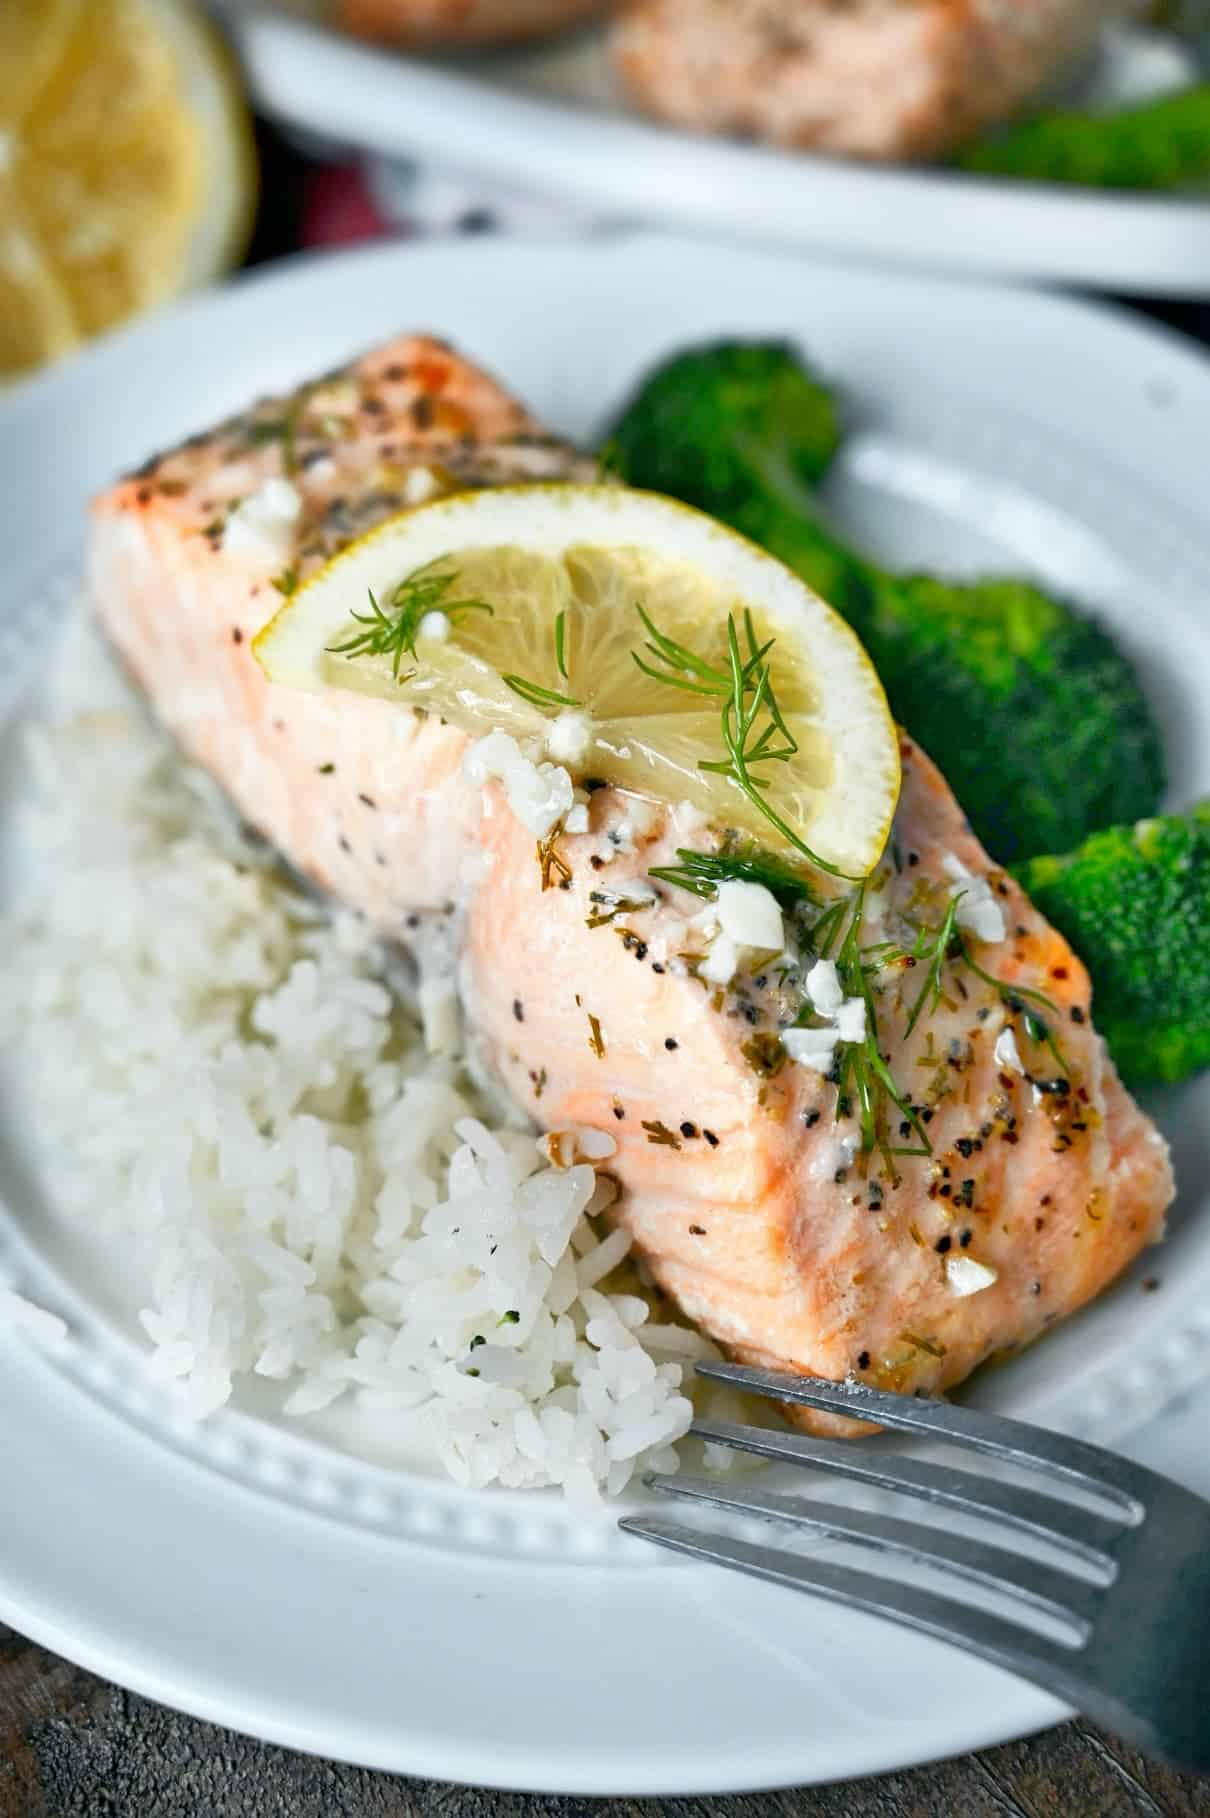 A salmon filet on a plate with a side of white rice and broccoli. Lemon butter sauce on top with a lemon slice.